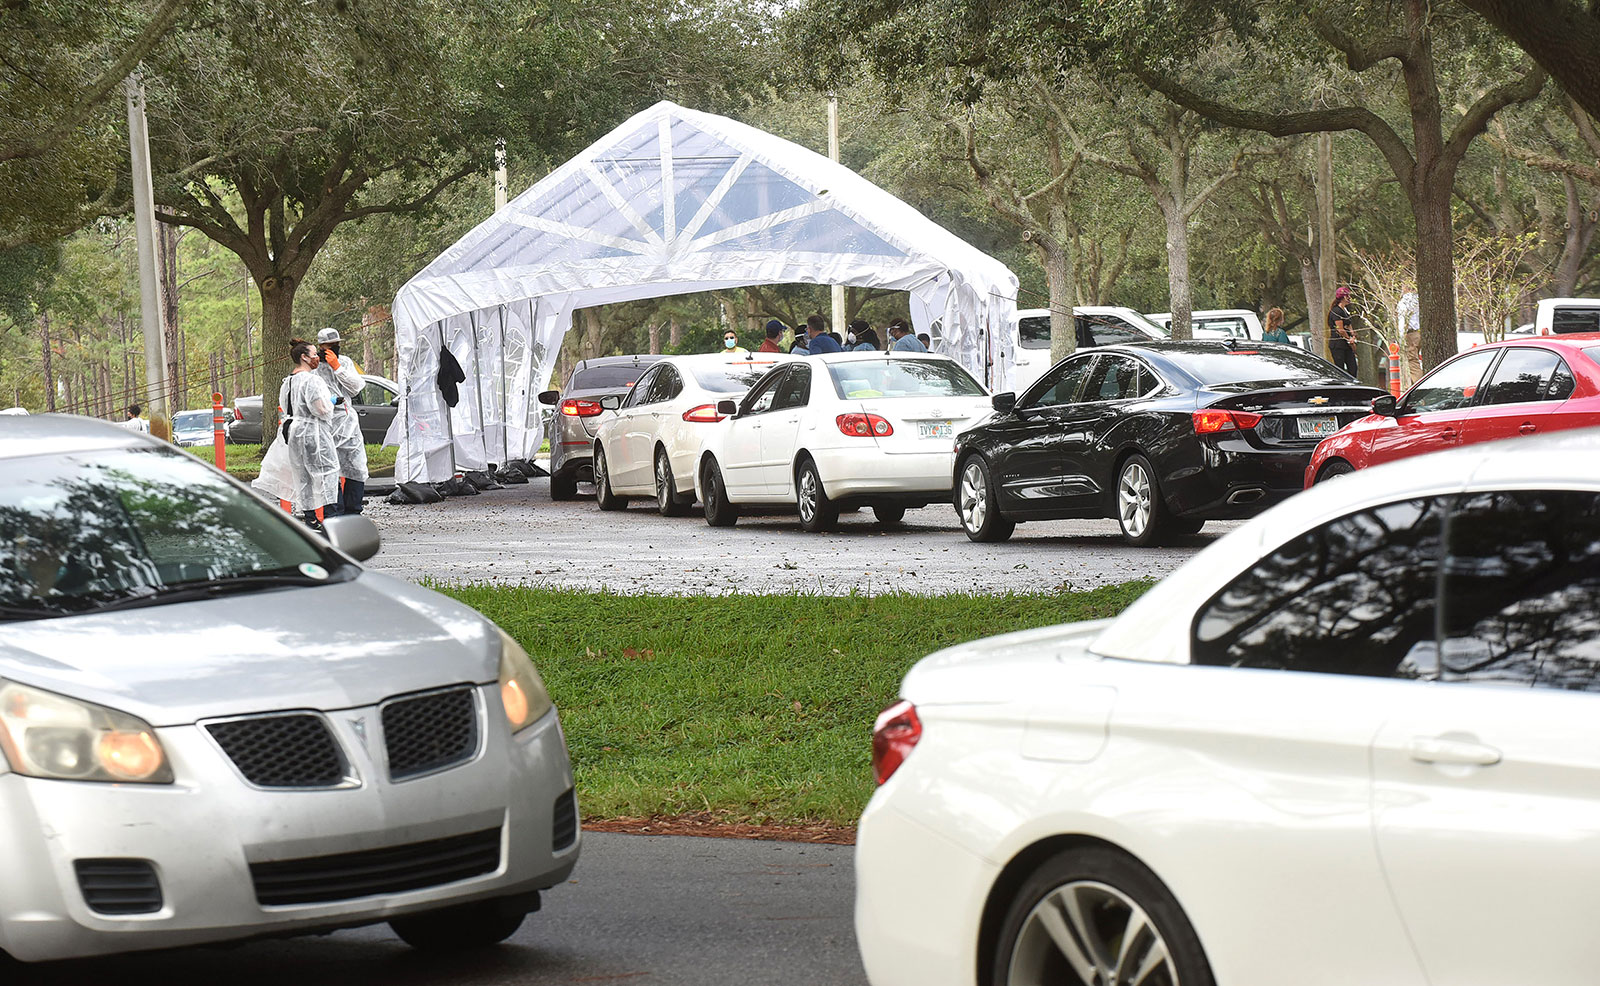 People in cars line up to receive Covid-19 tests at a drive through testing site in Orlando, Florida, on November 9.